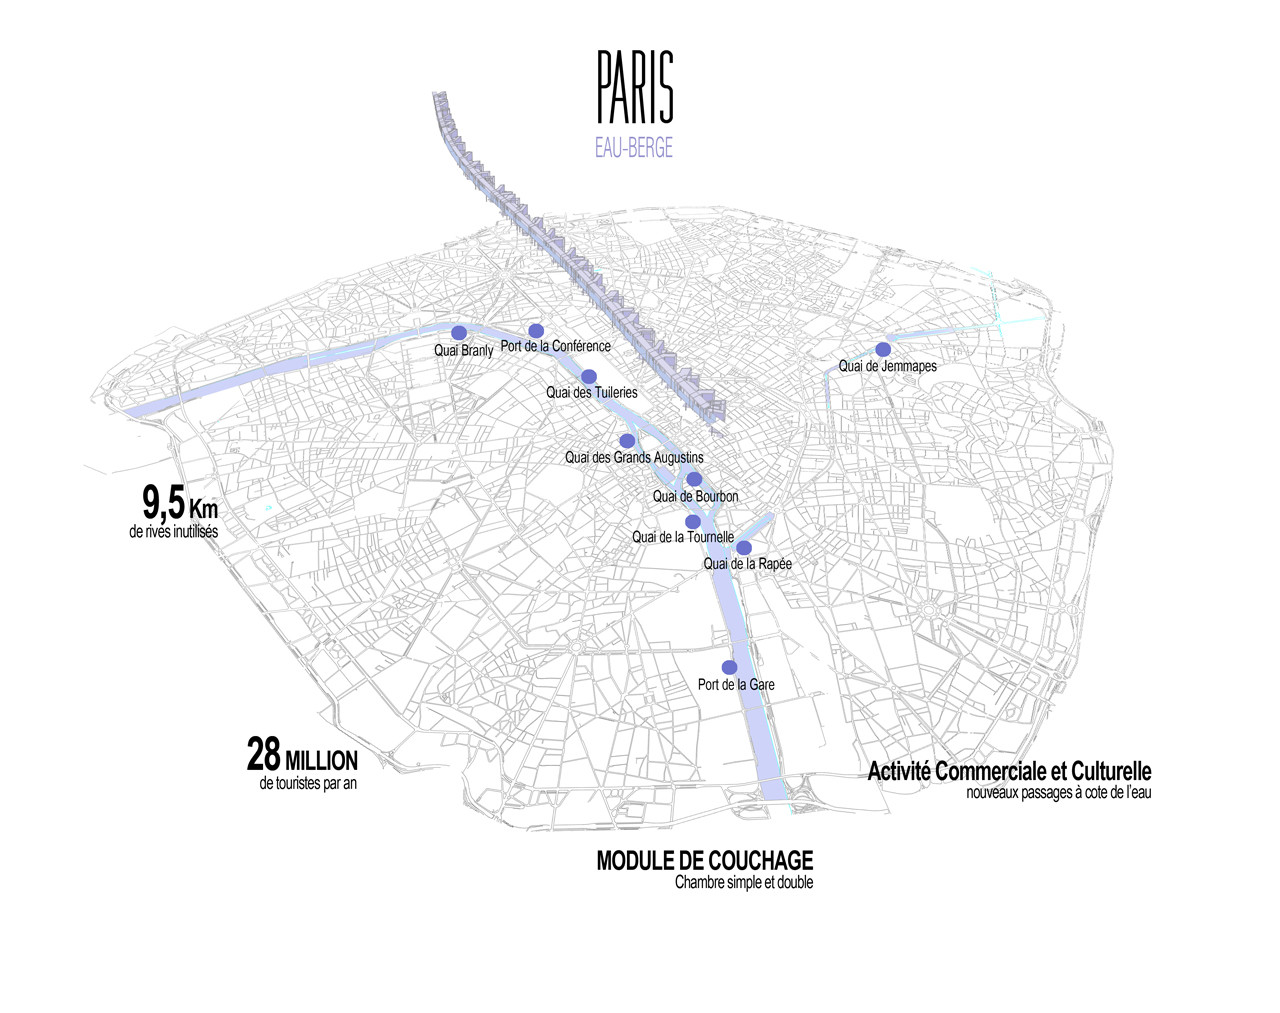 menomenopiu proposes capsule hotel for short term housing in parismap of paris